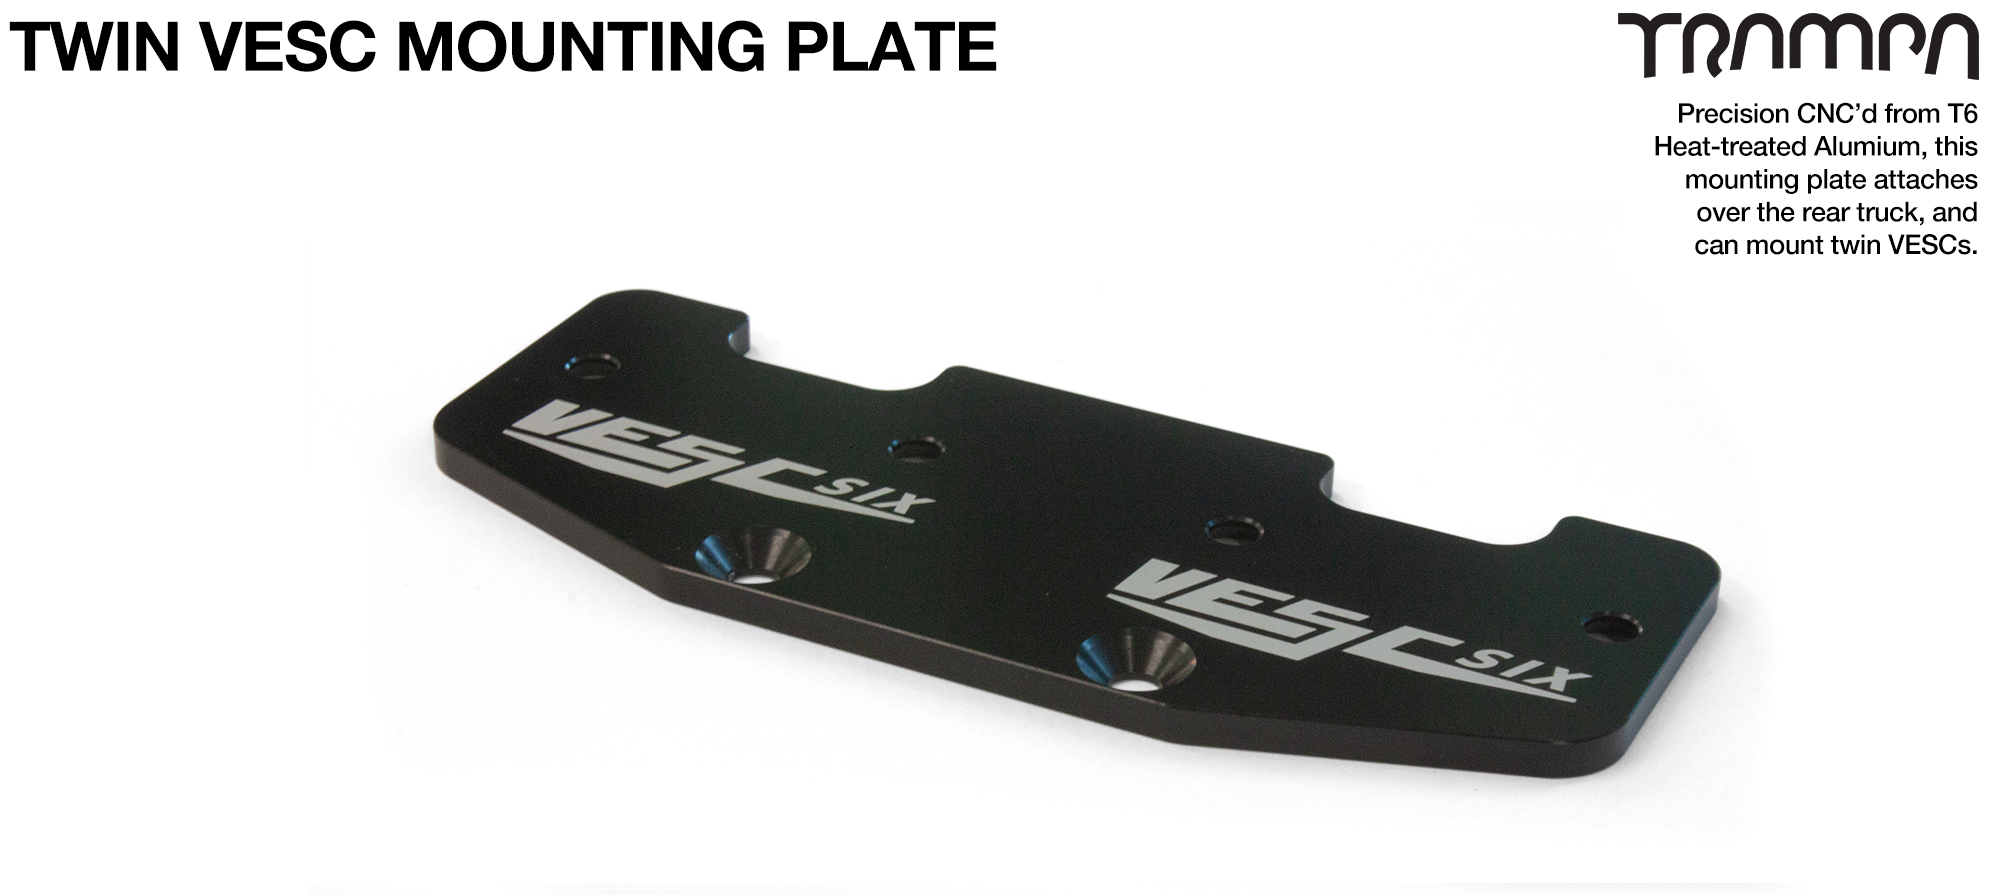 ALUMINIUM mounting Plate for TWIN VESC